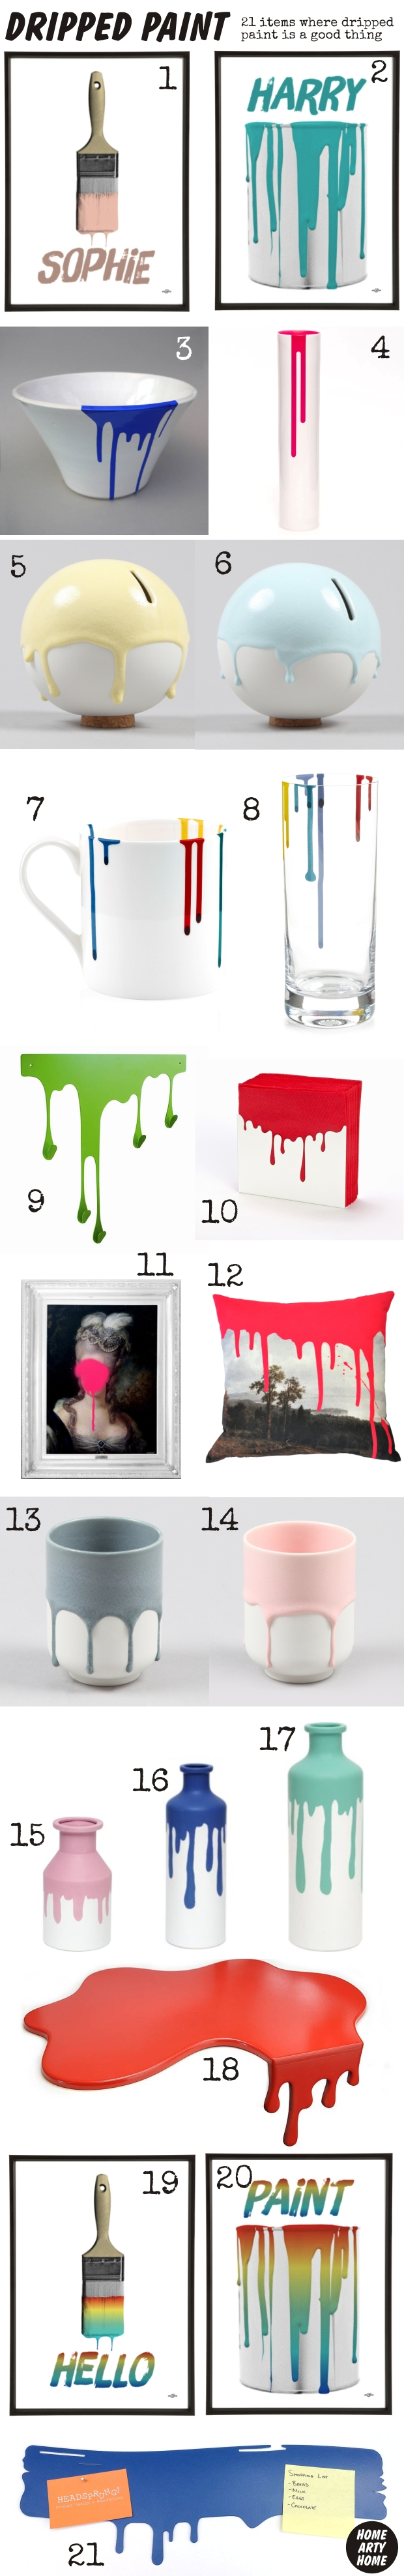 Paint_Dripped_homeartyhome1